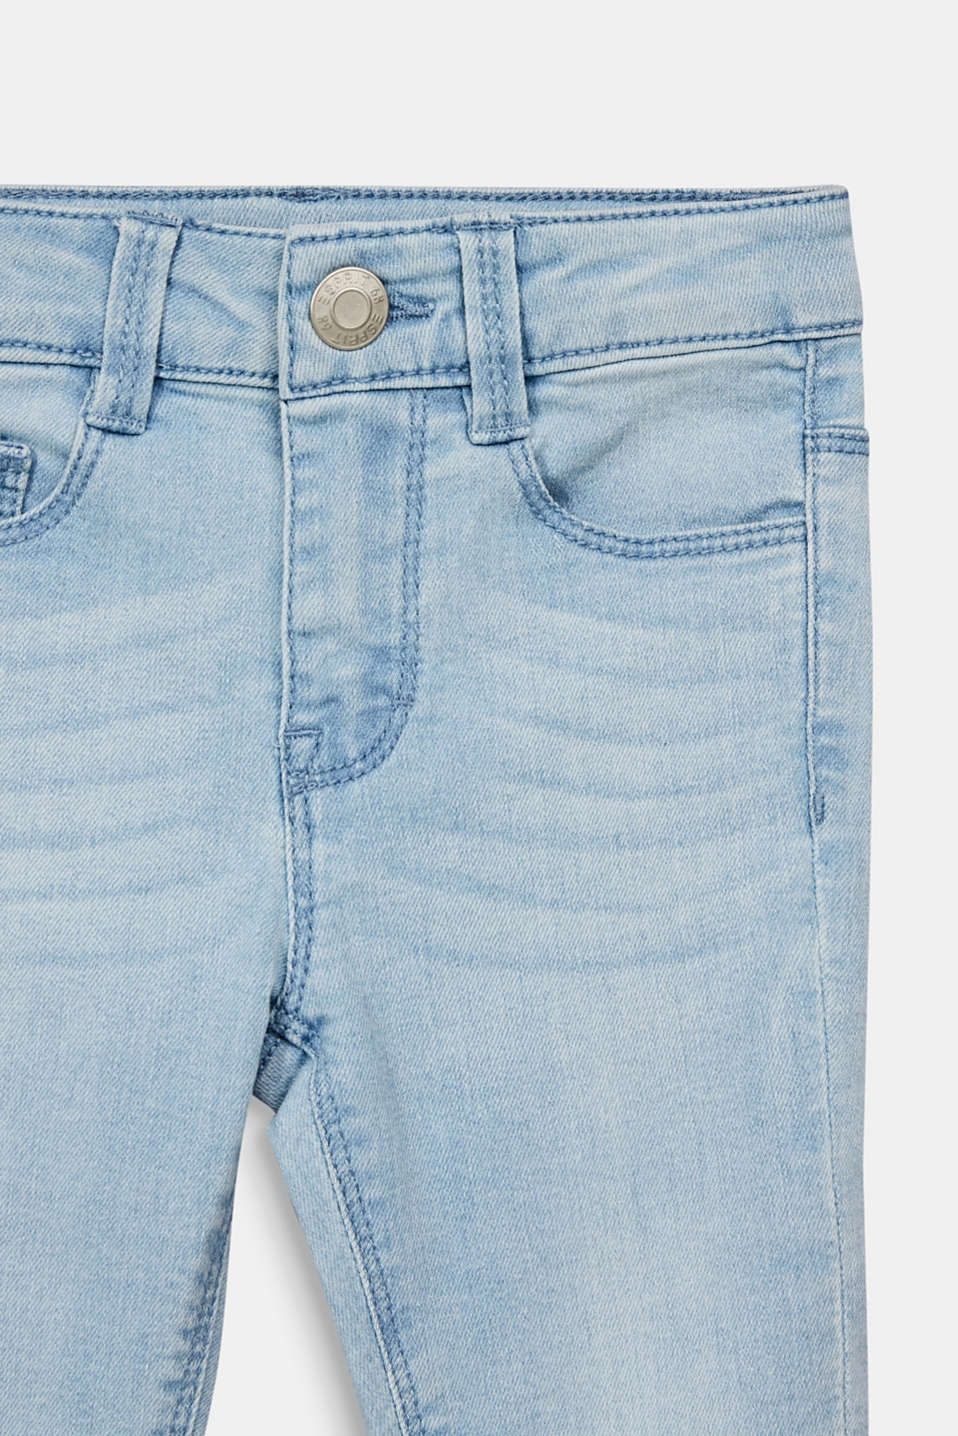 Capris jeans with an adjustable waistband, BLEACHED DENIM, detail image number 2